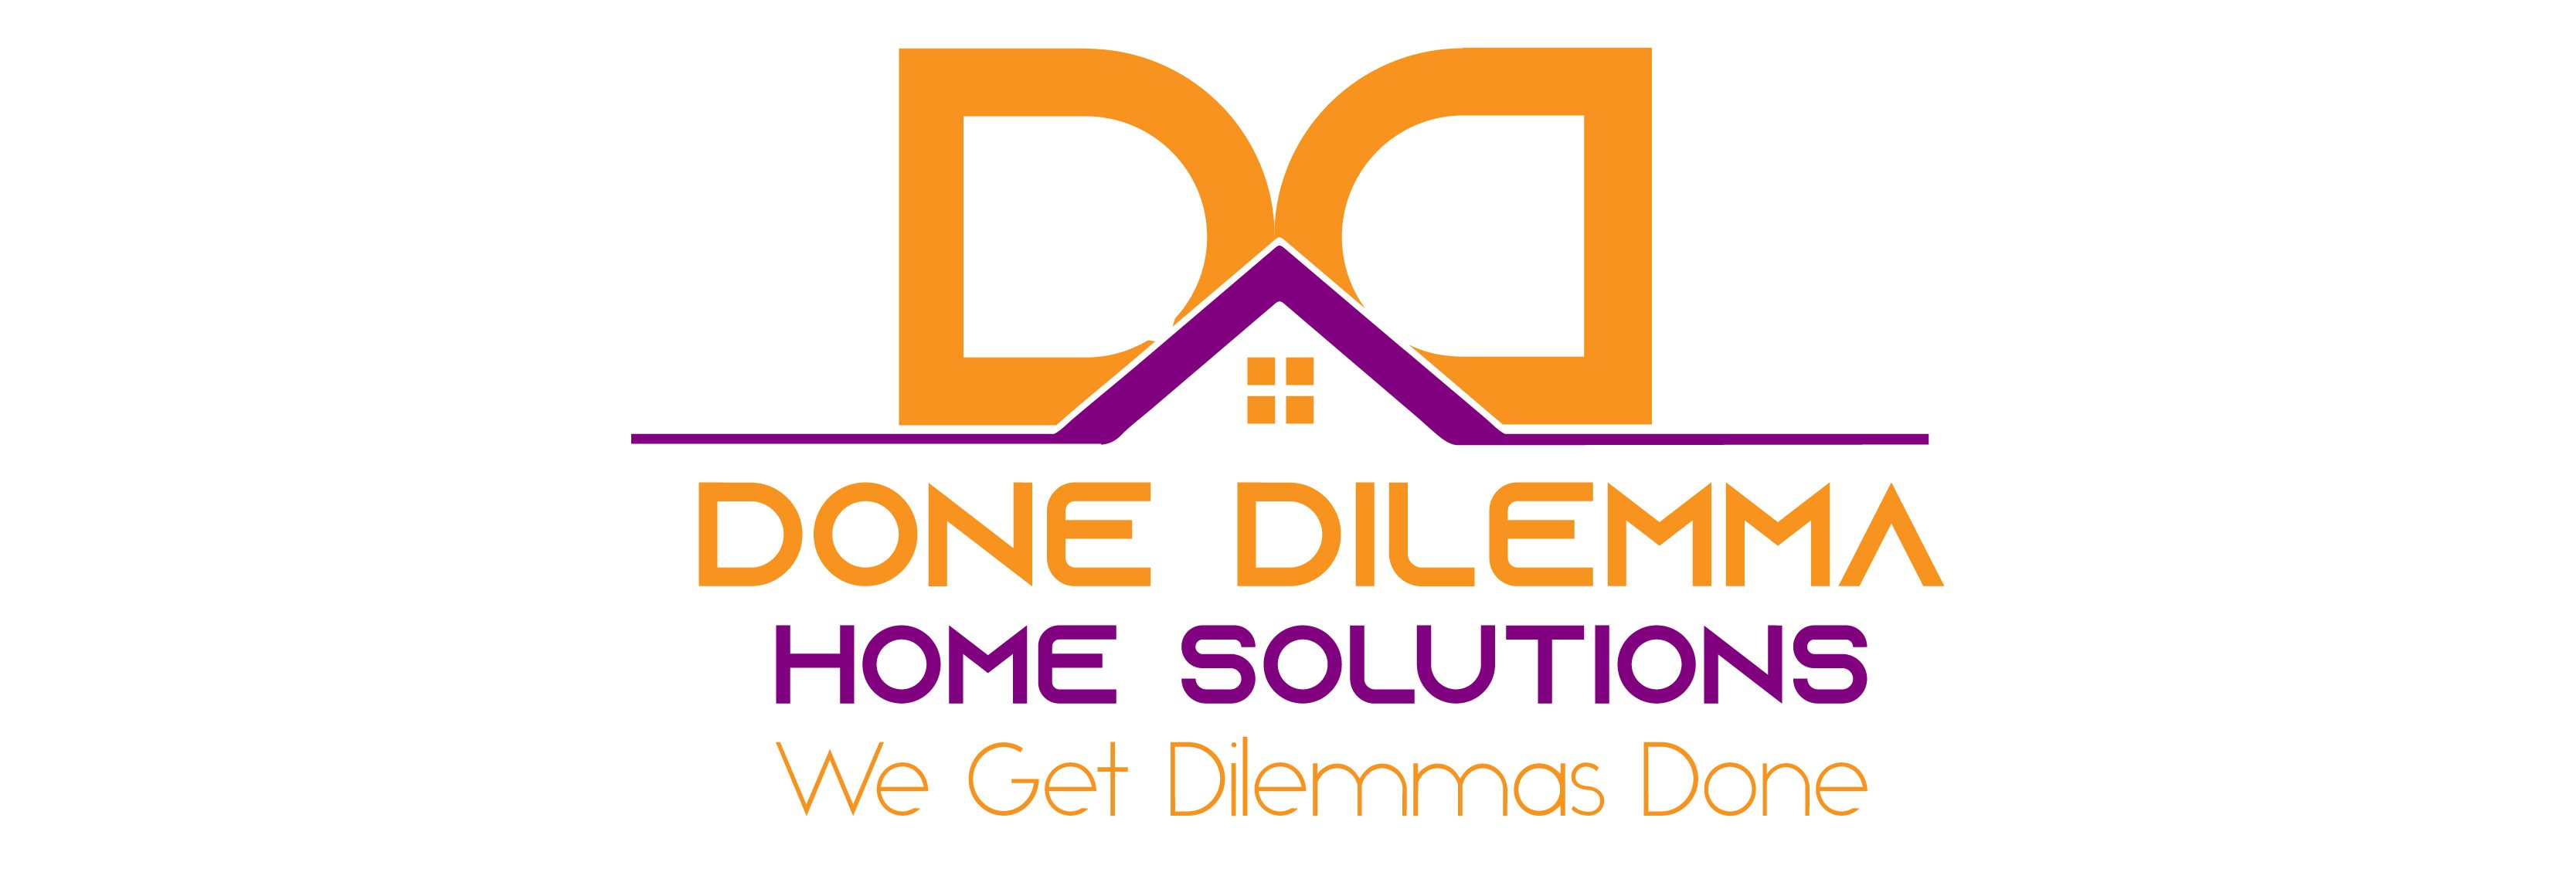 Done Dilemma Home Solutions